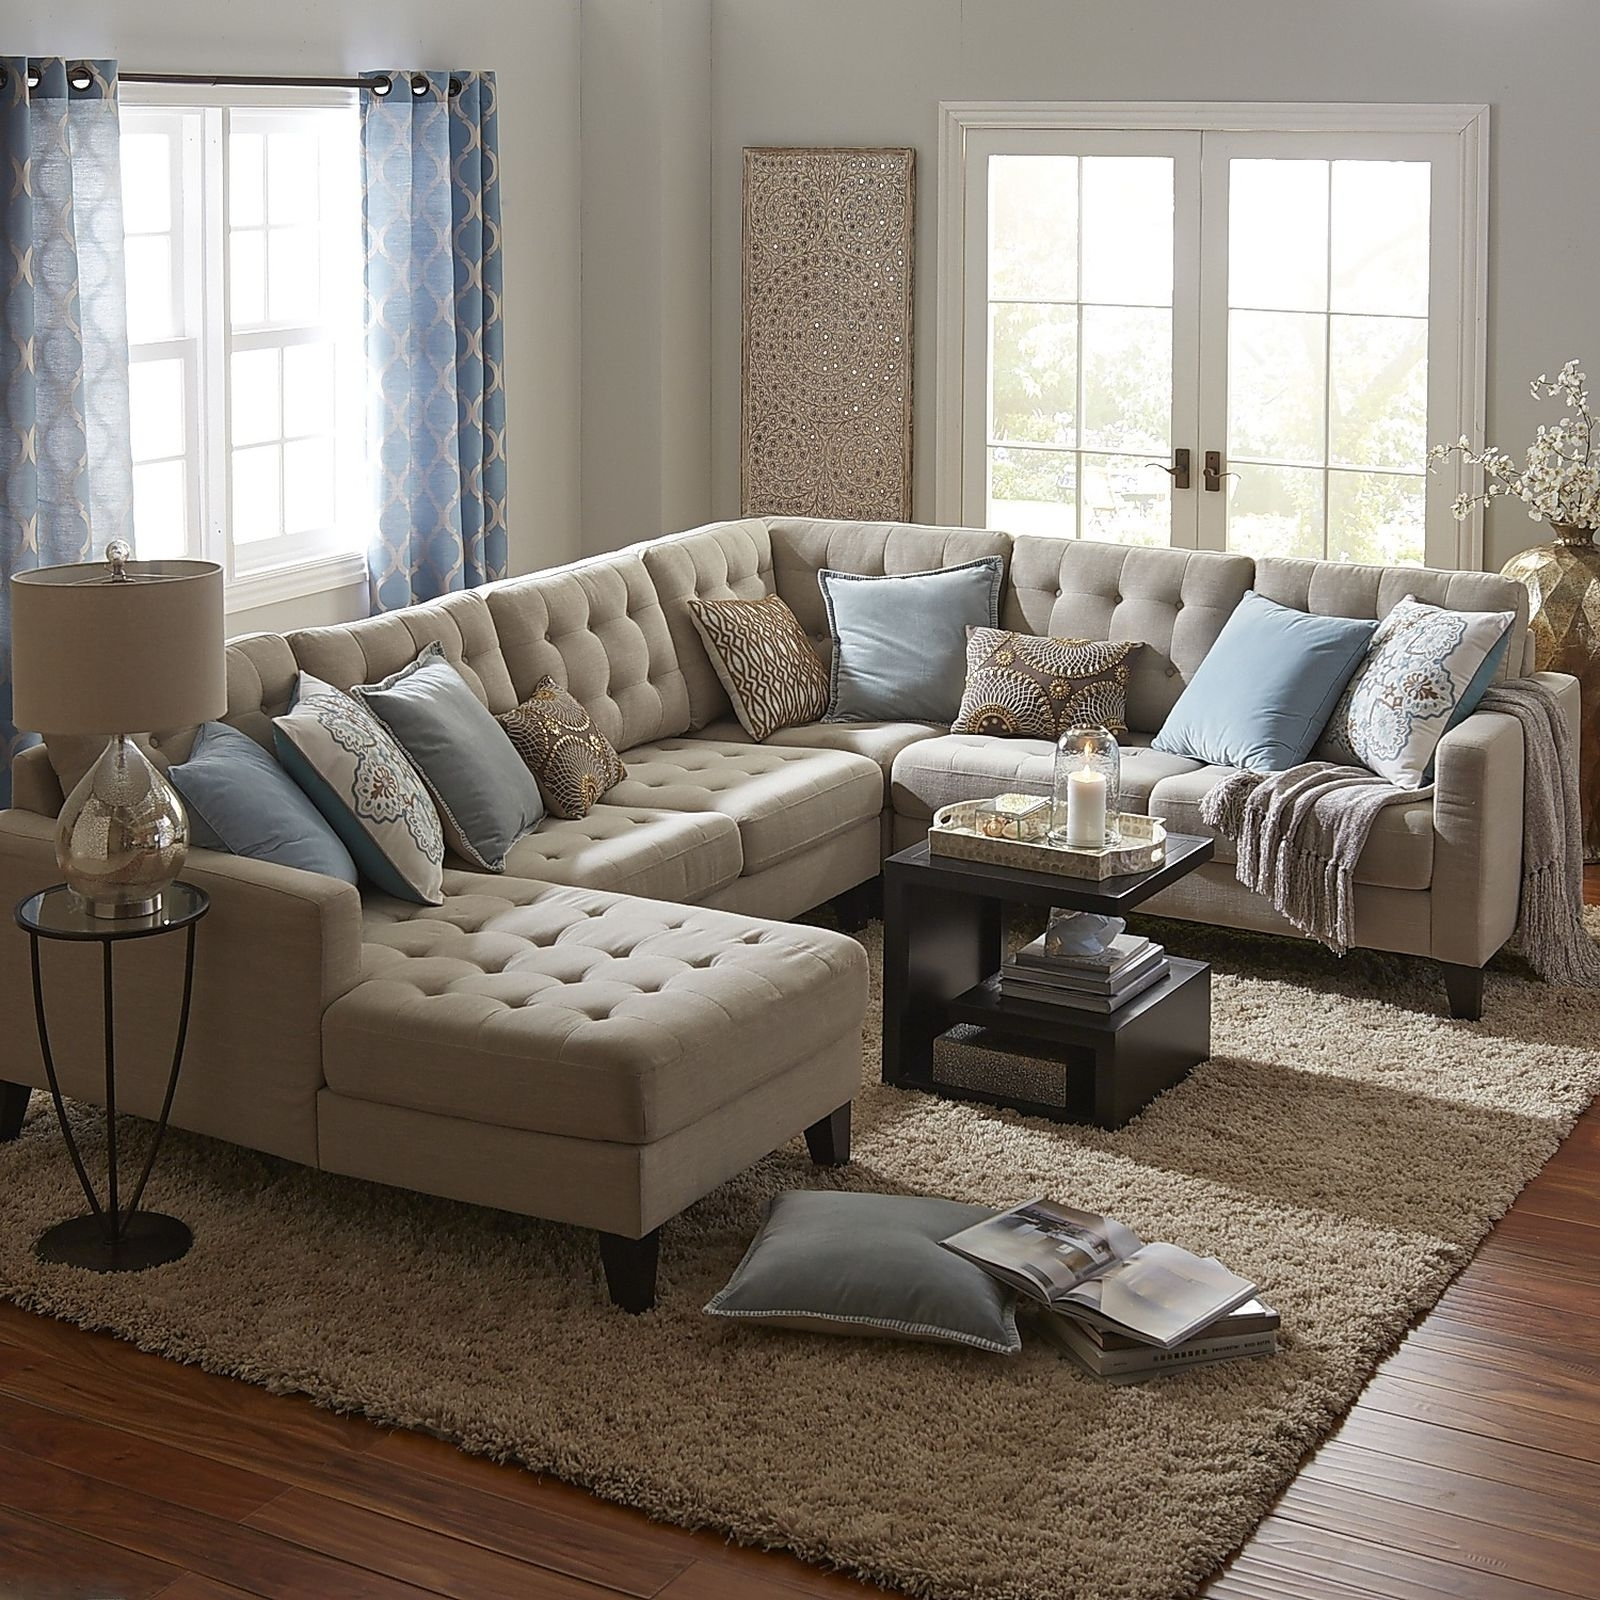 Sectional Sofas With Favorite Epic Sectional Sofas 89 Living Room Sofa Inspiration With (View 10 of 15)